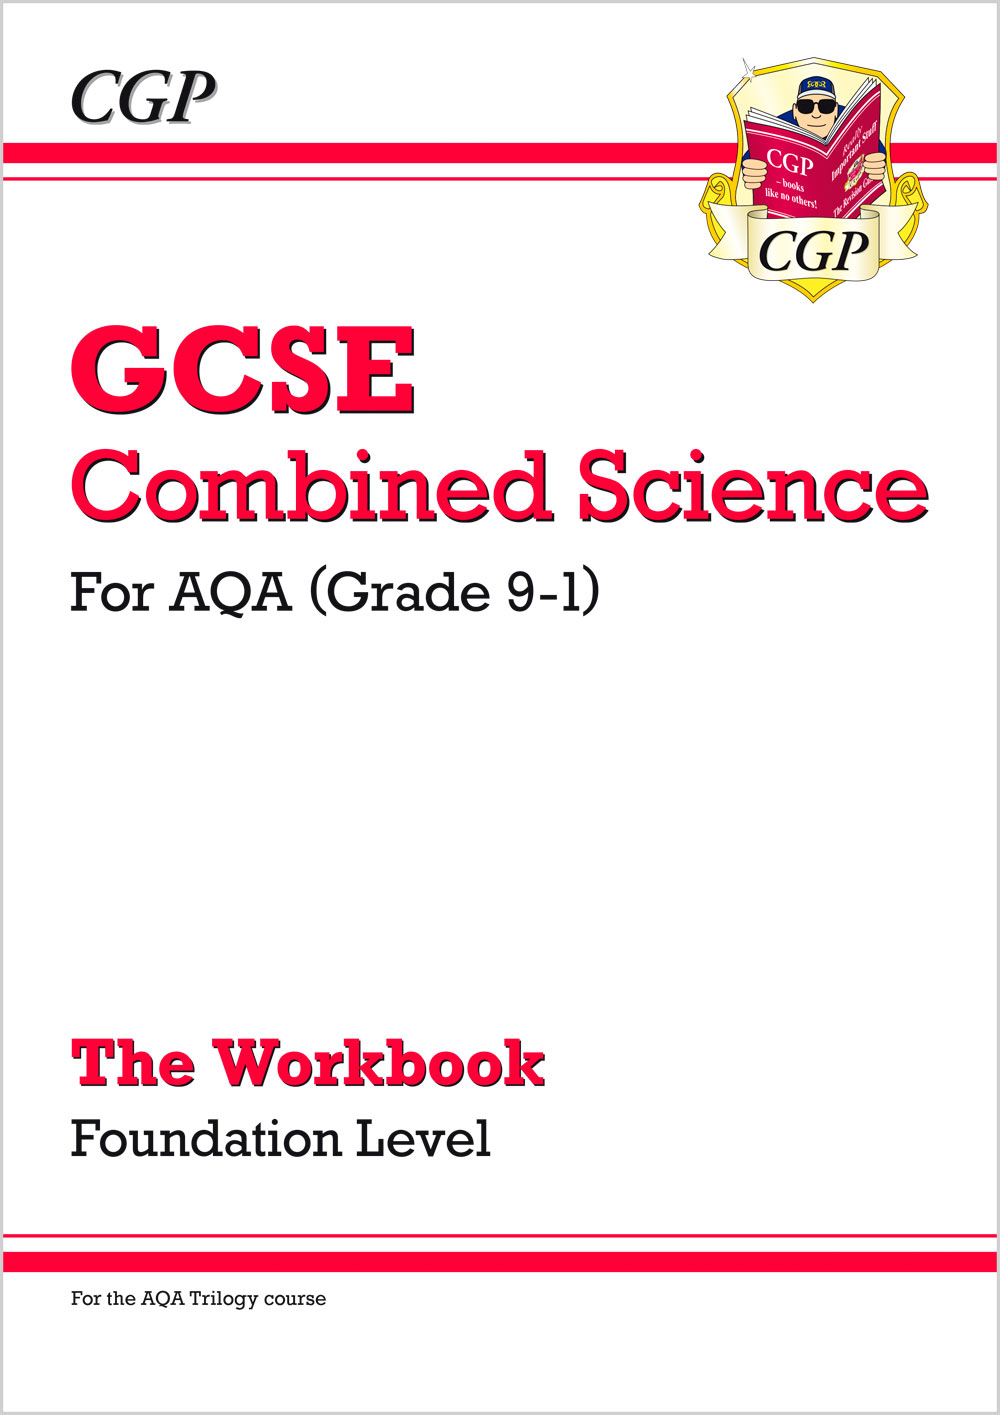 SCAFW41 - New Grade 9-1 GCSE Combined Science: AQA Workbook - Foundation